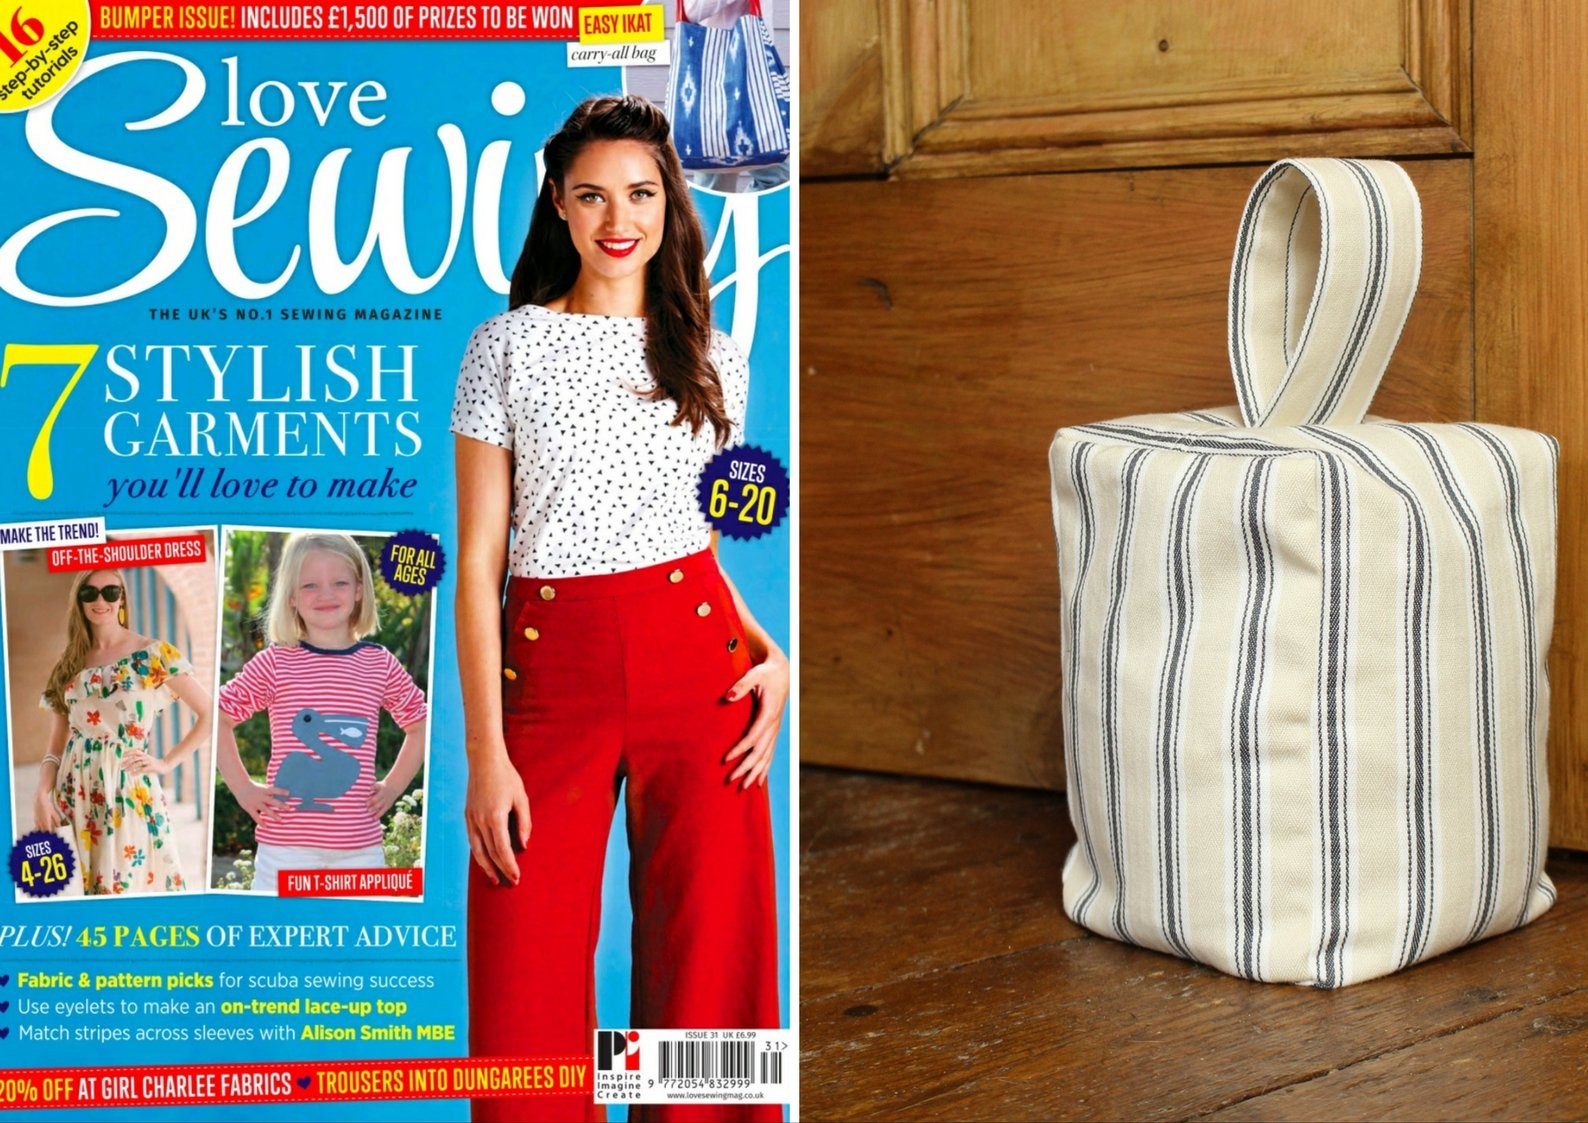 Doorstop featured in Love Sewing issue 31